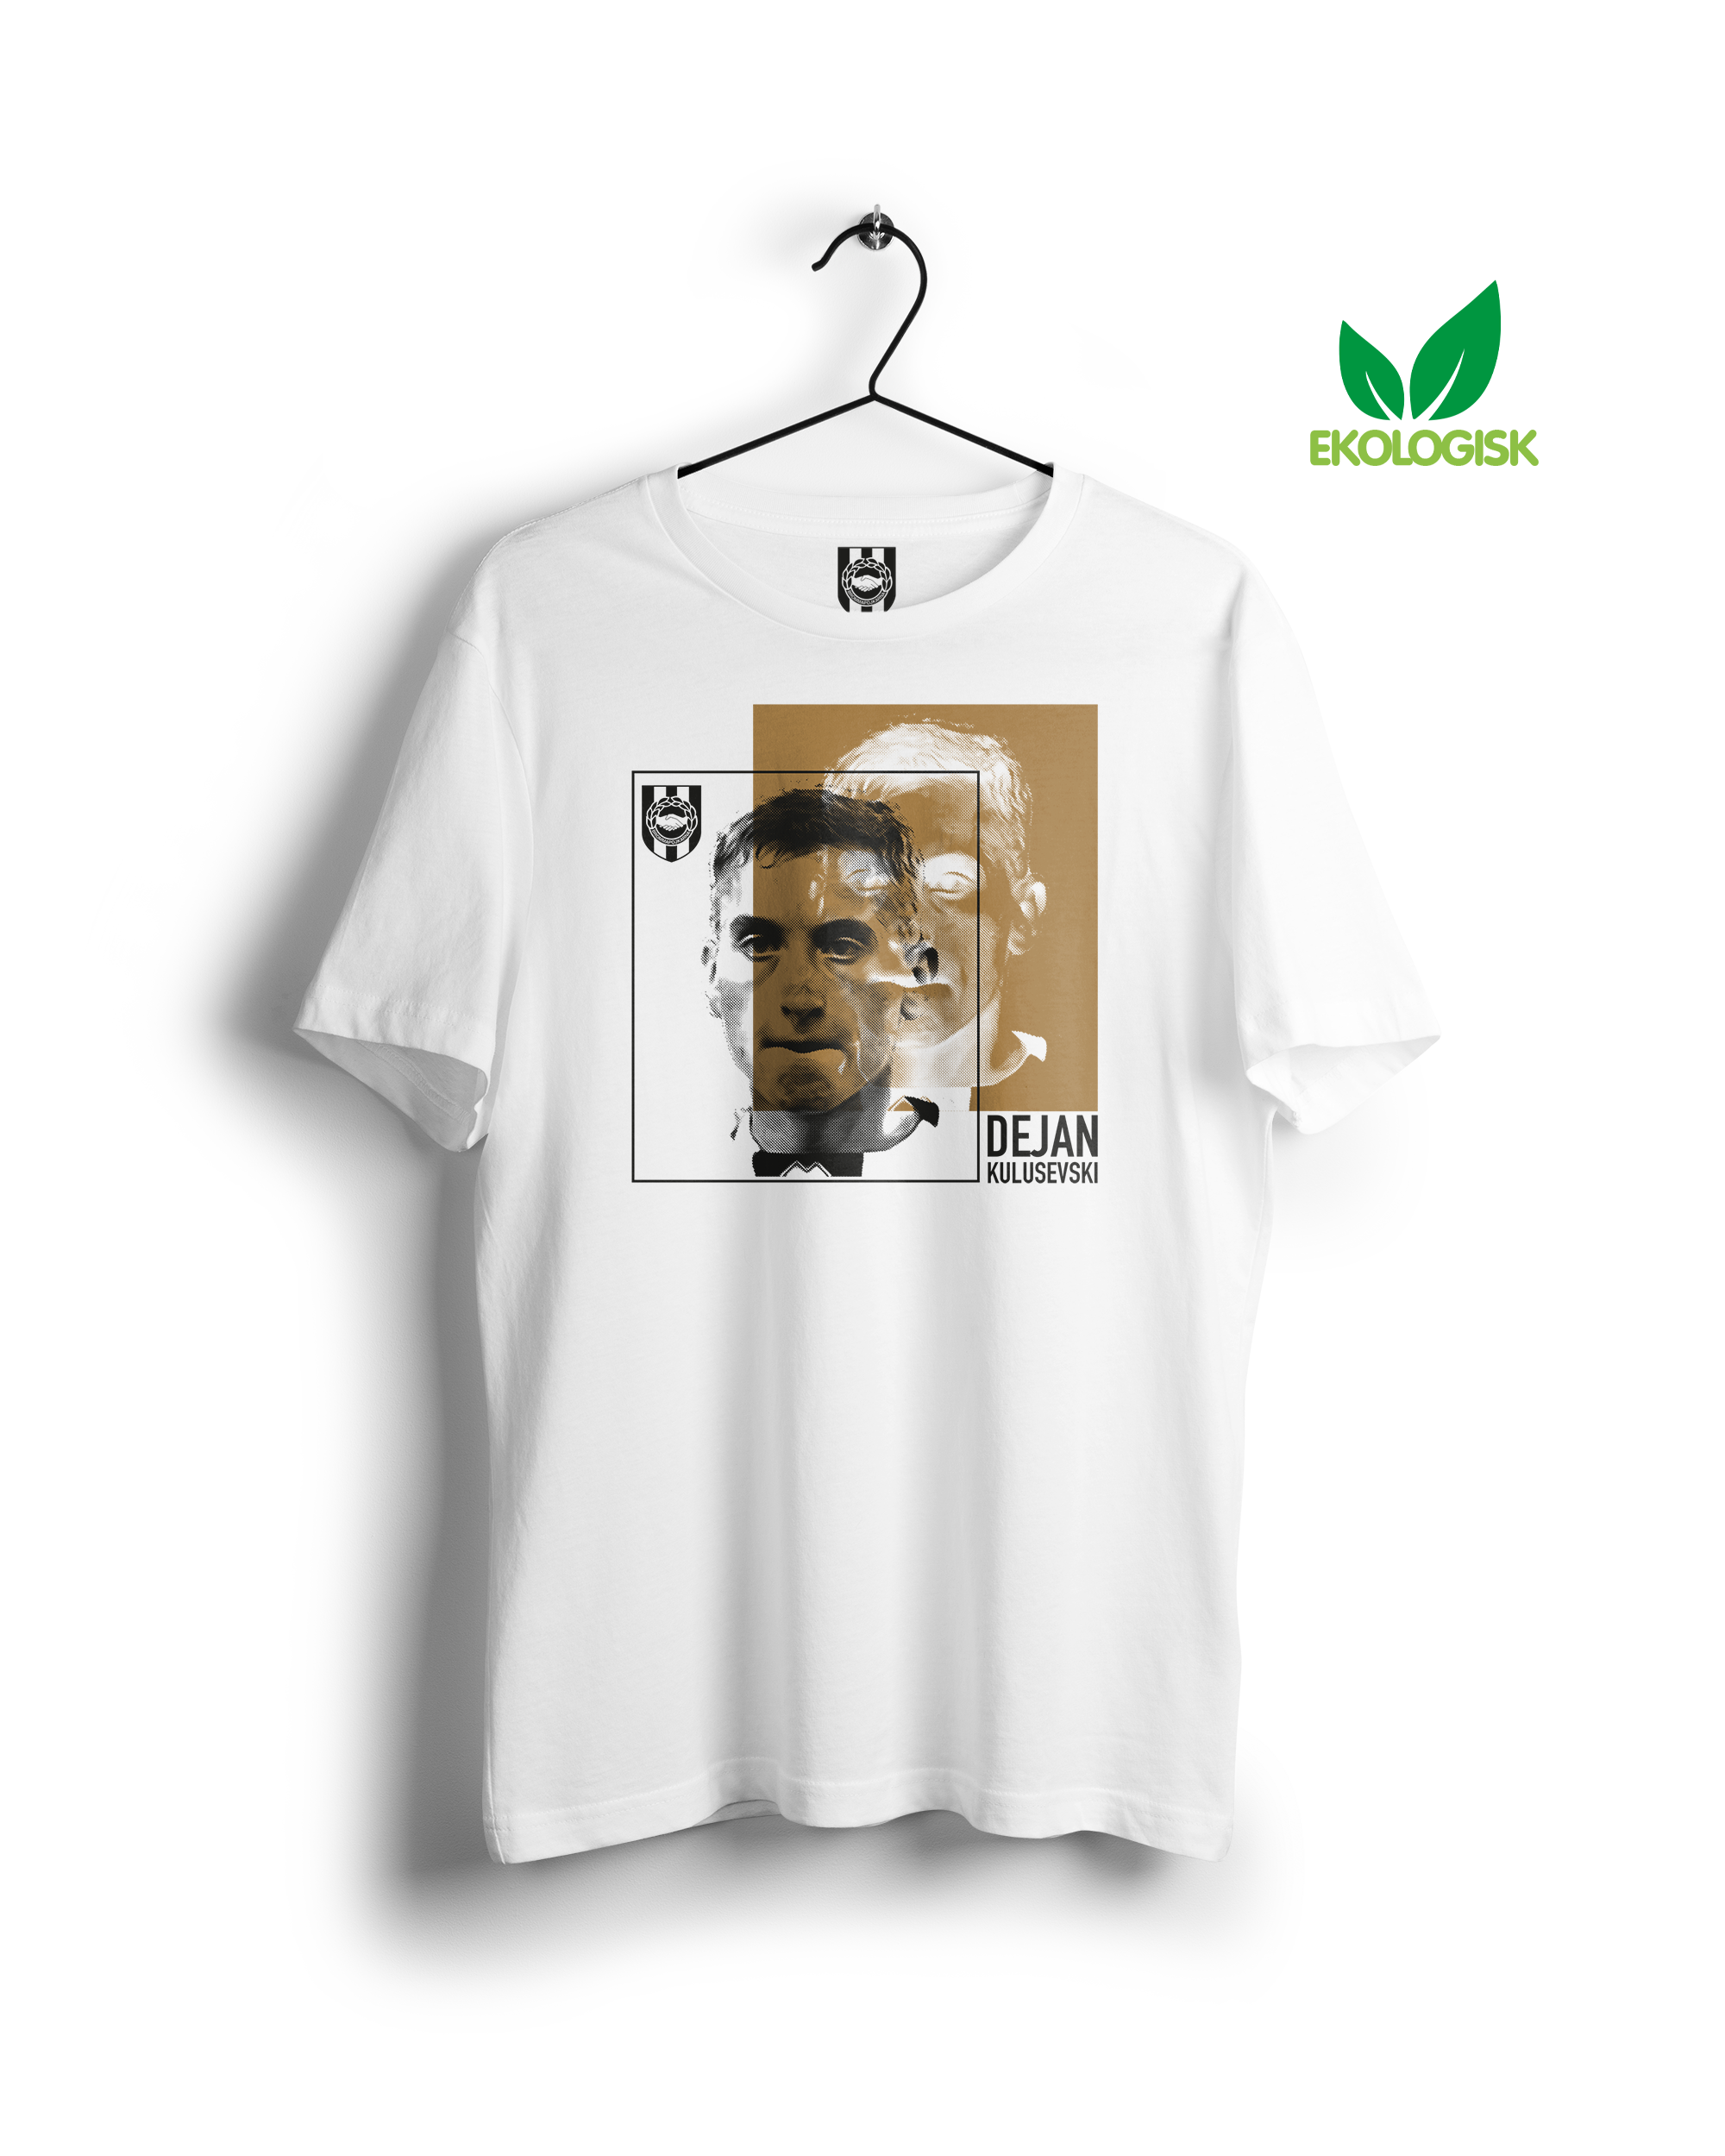 BP Dejan Abstrakt T-shirt